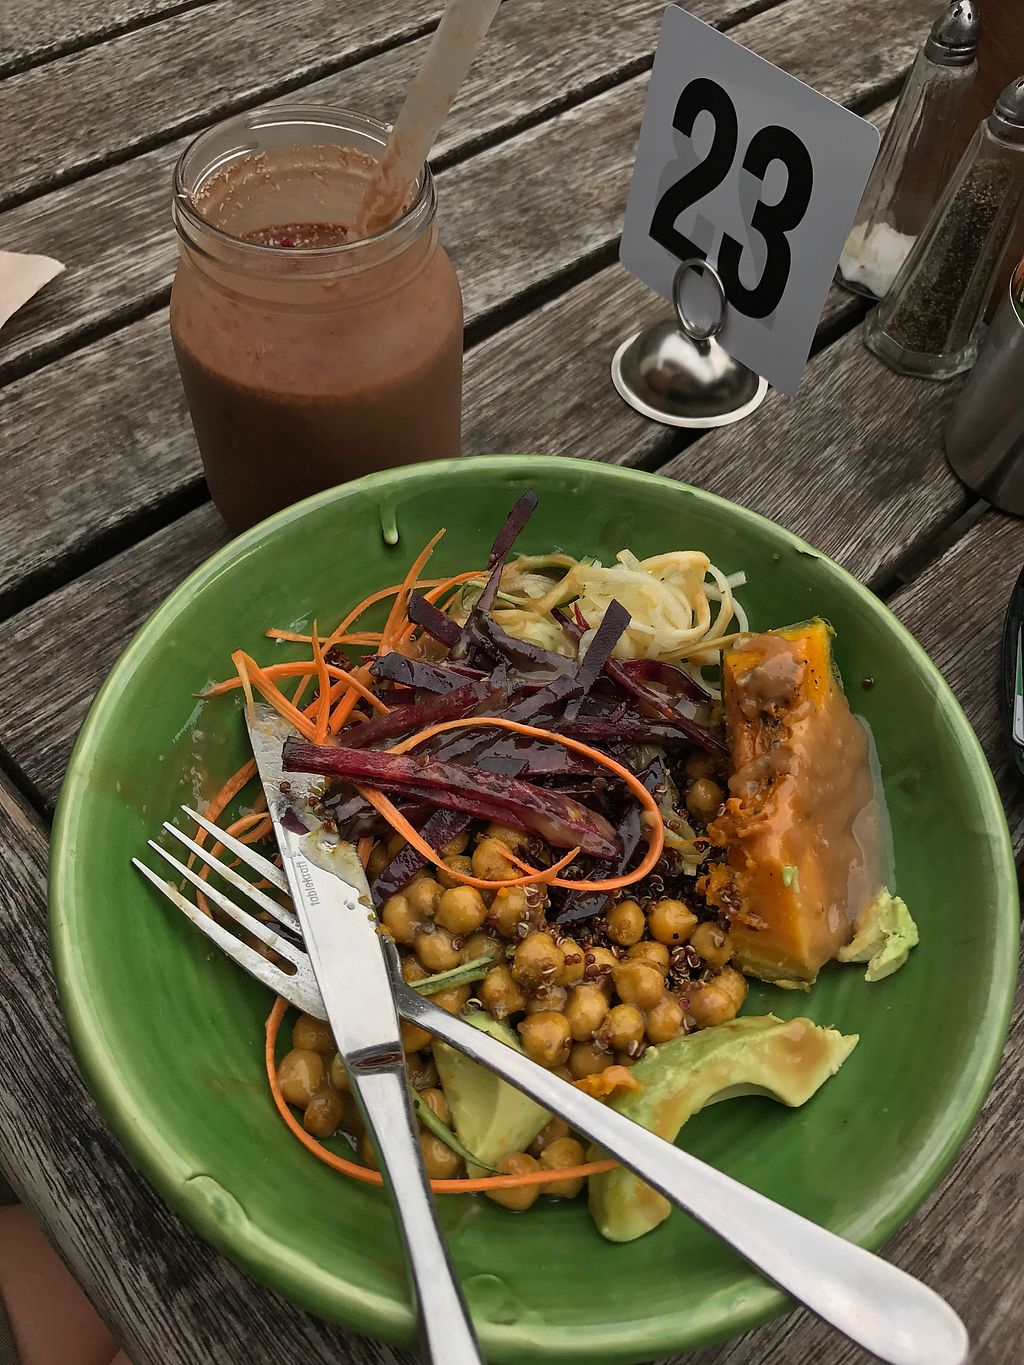 """Photo of Two Birds Eatery  by <a href=""""/members/profile/SabrinaMcKenzie"""">SabrinaMcKenzie</a> <br/>Choc PB smoothie and humble bowl <br/> January 25, 2018  - <a href='/contact/abuse/image/51422/350872'>Report</a>"""